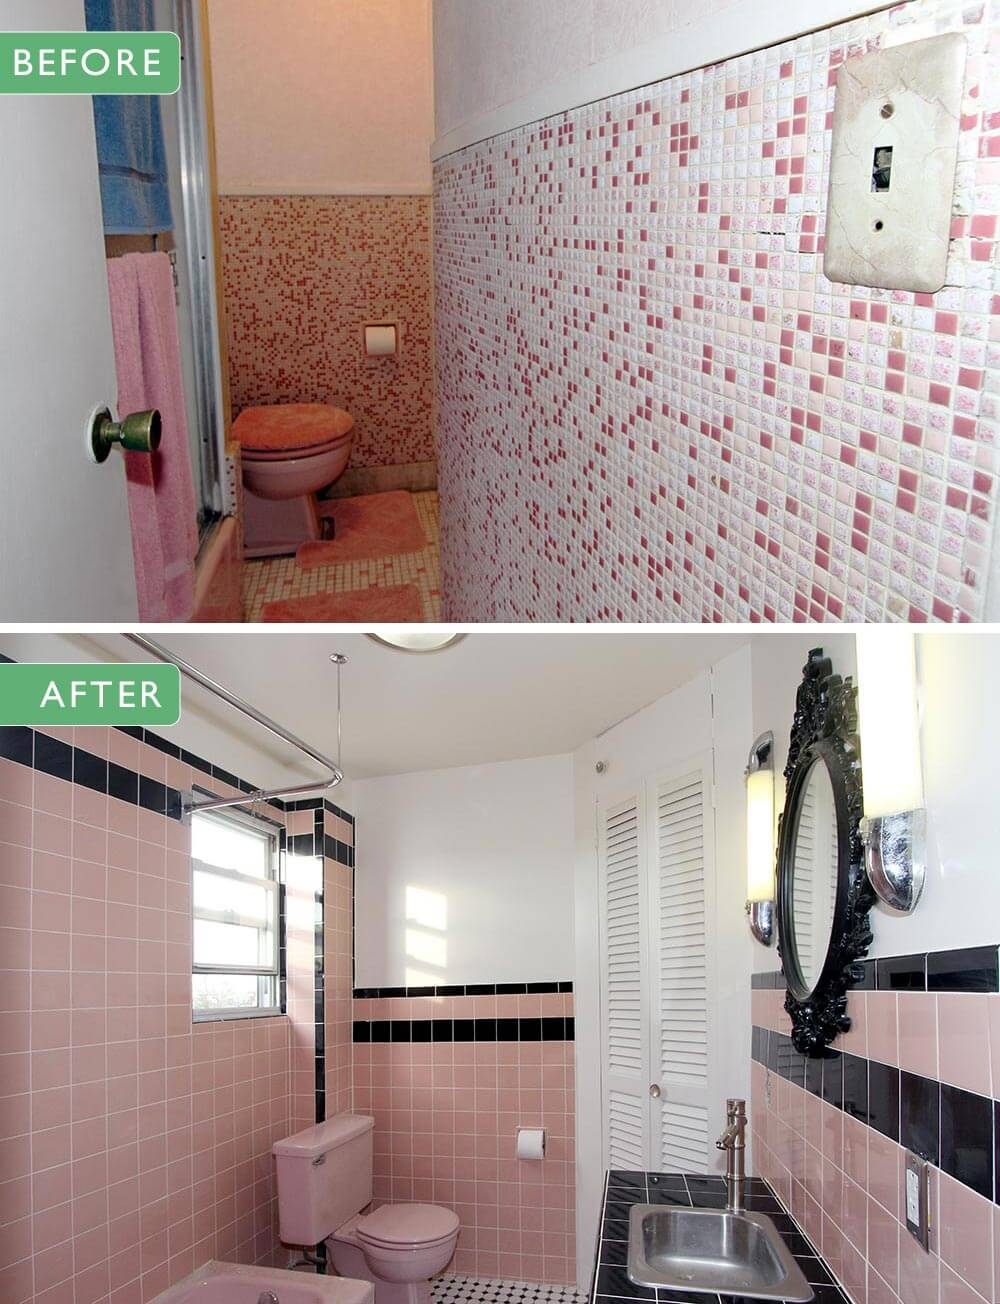 Where to find vintage bathroom tile: Remember to check your local ...